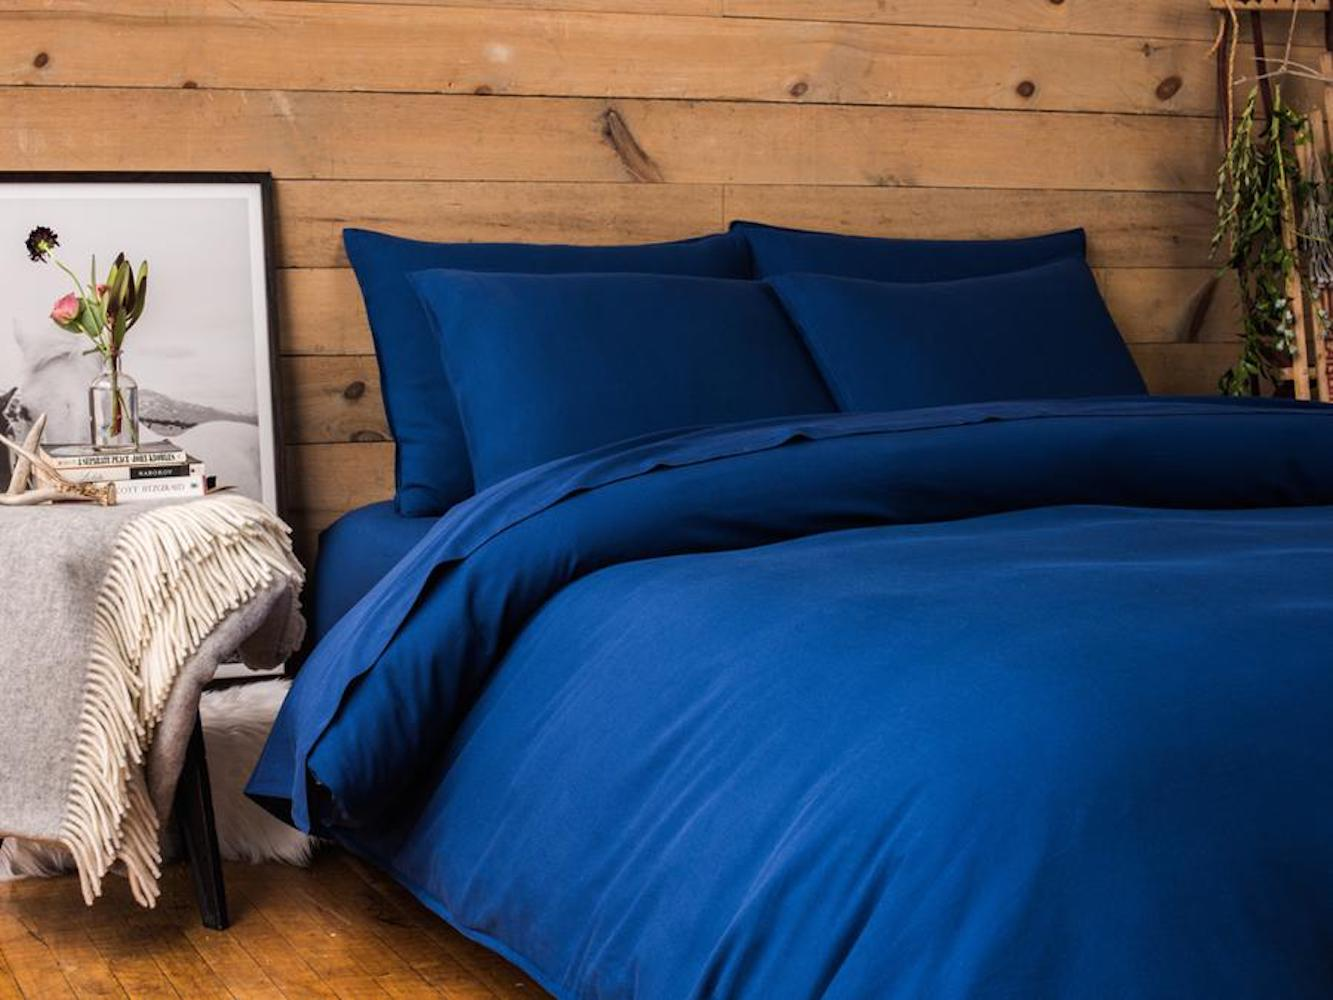 cozy bed with blue duvet and wooden headboard